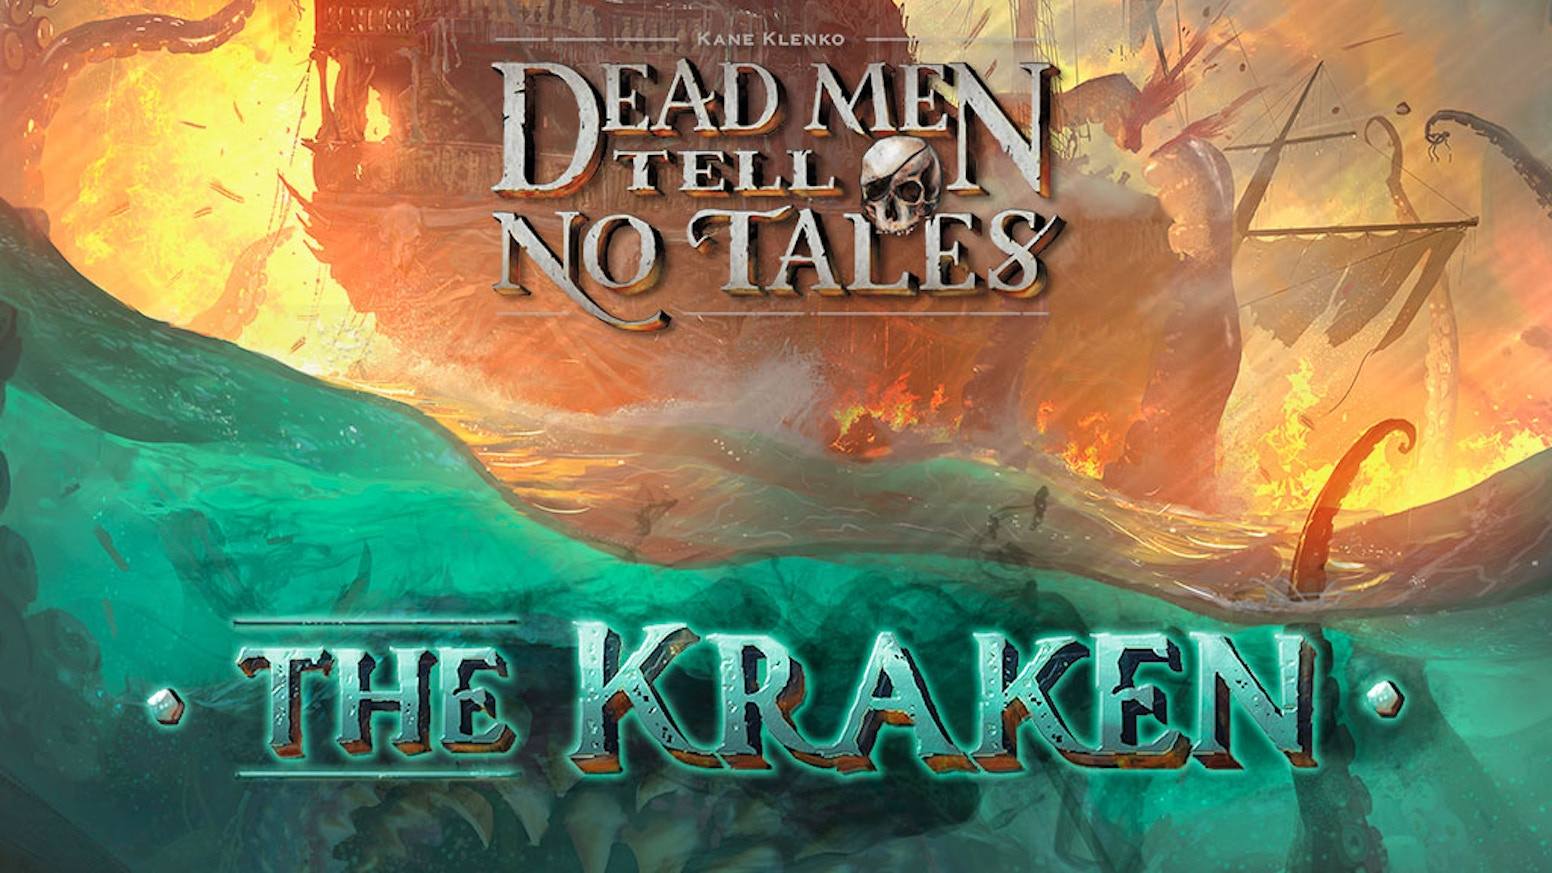 The Kraken game expansion and miniatures addon for Dead Men Tell No Tales cooperative board game.*** WATCH FOR LATE BACKER LINK IN MARCH! ***